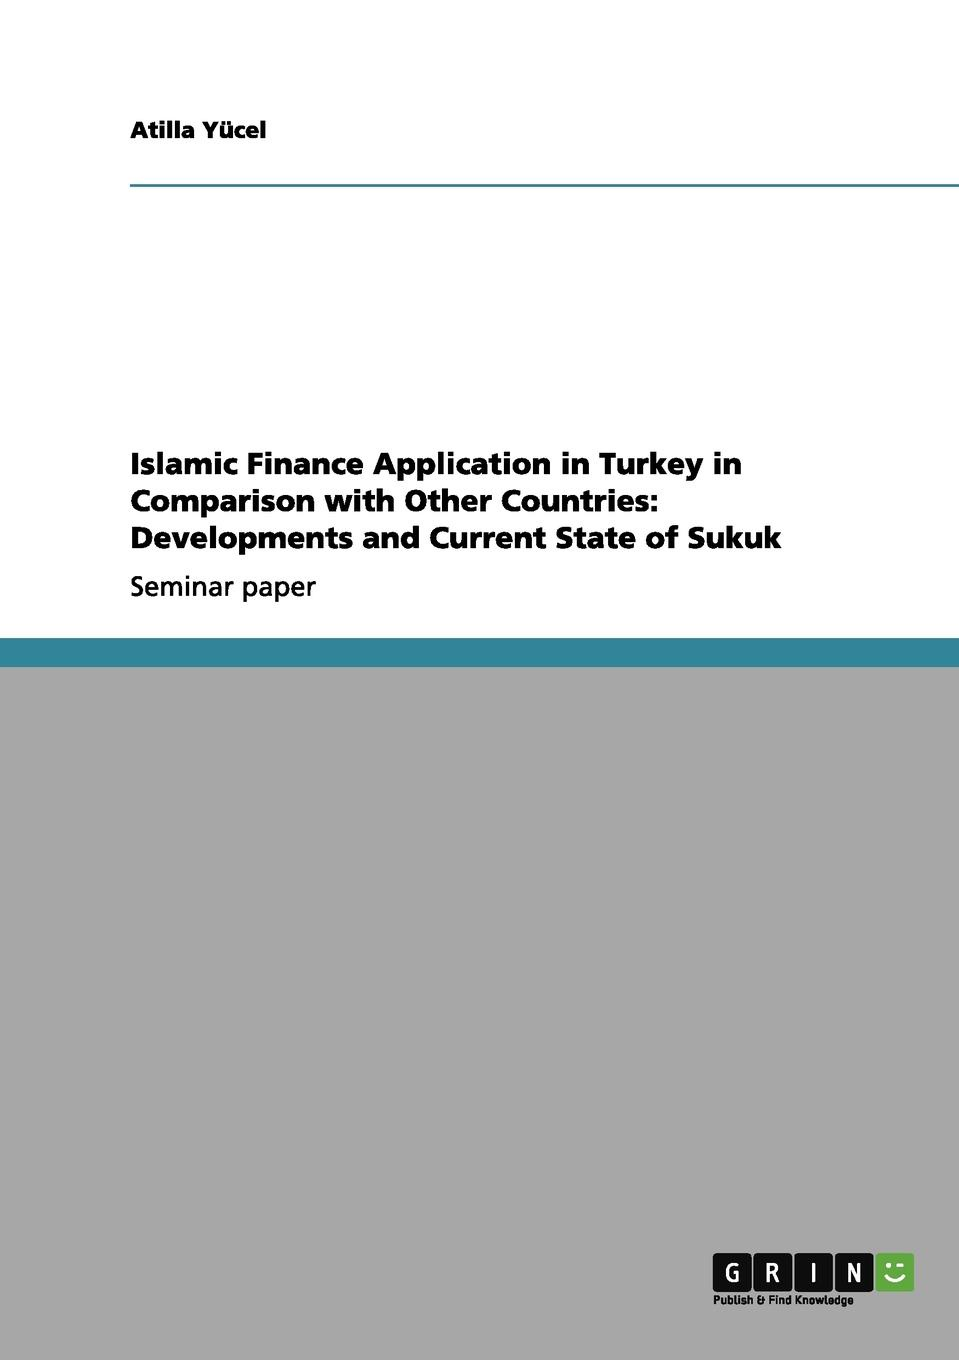 Atilla Yücel Islamic Finance Application in Turkey in Comparison with Other Countries. Developments and Current State of Sukuk недорго, оригинальная цена